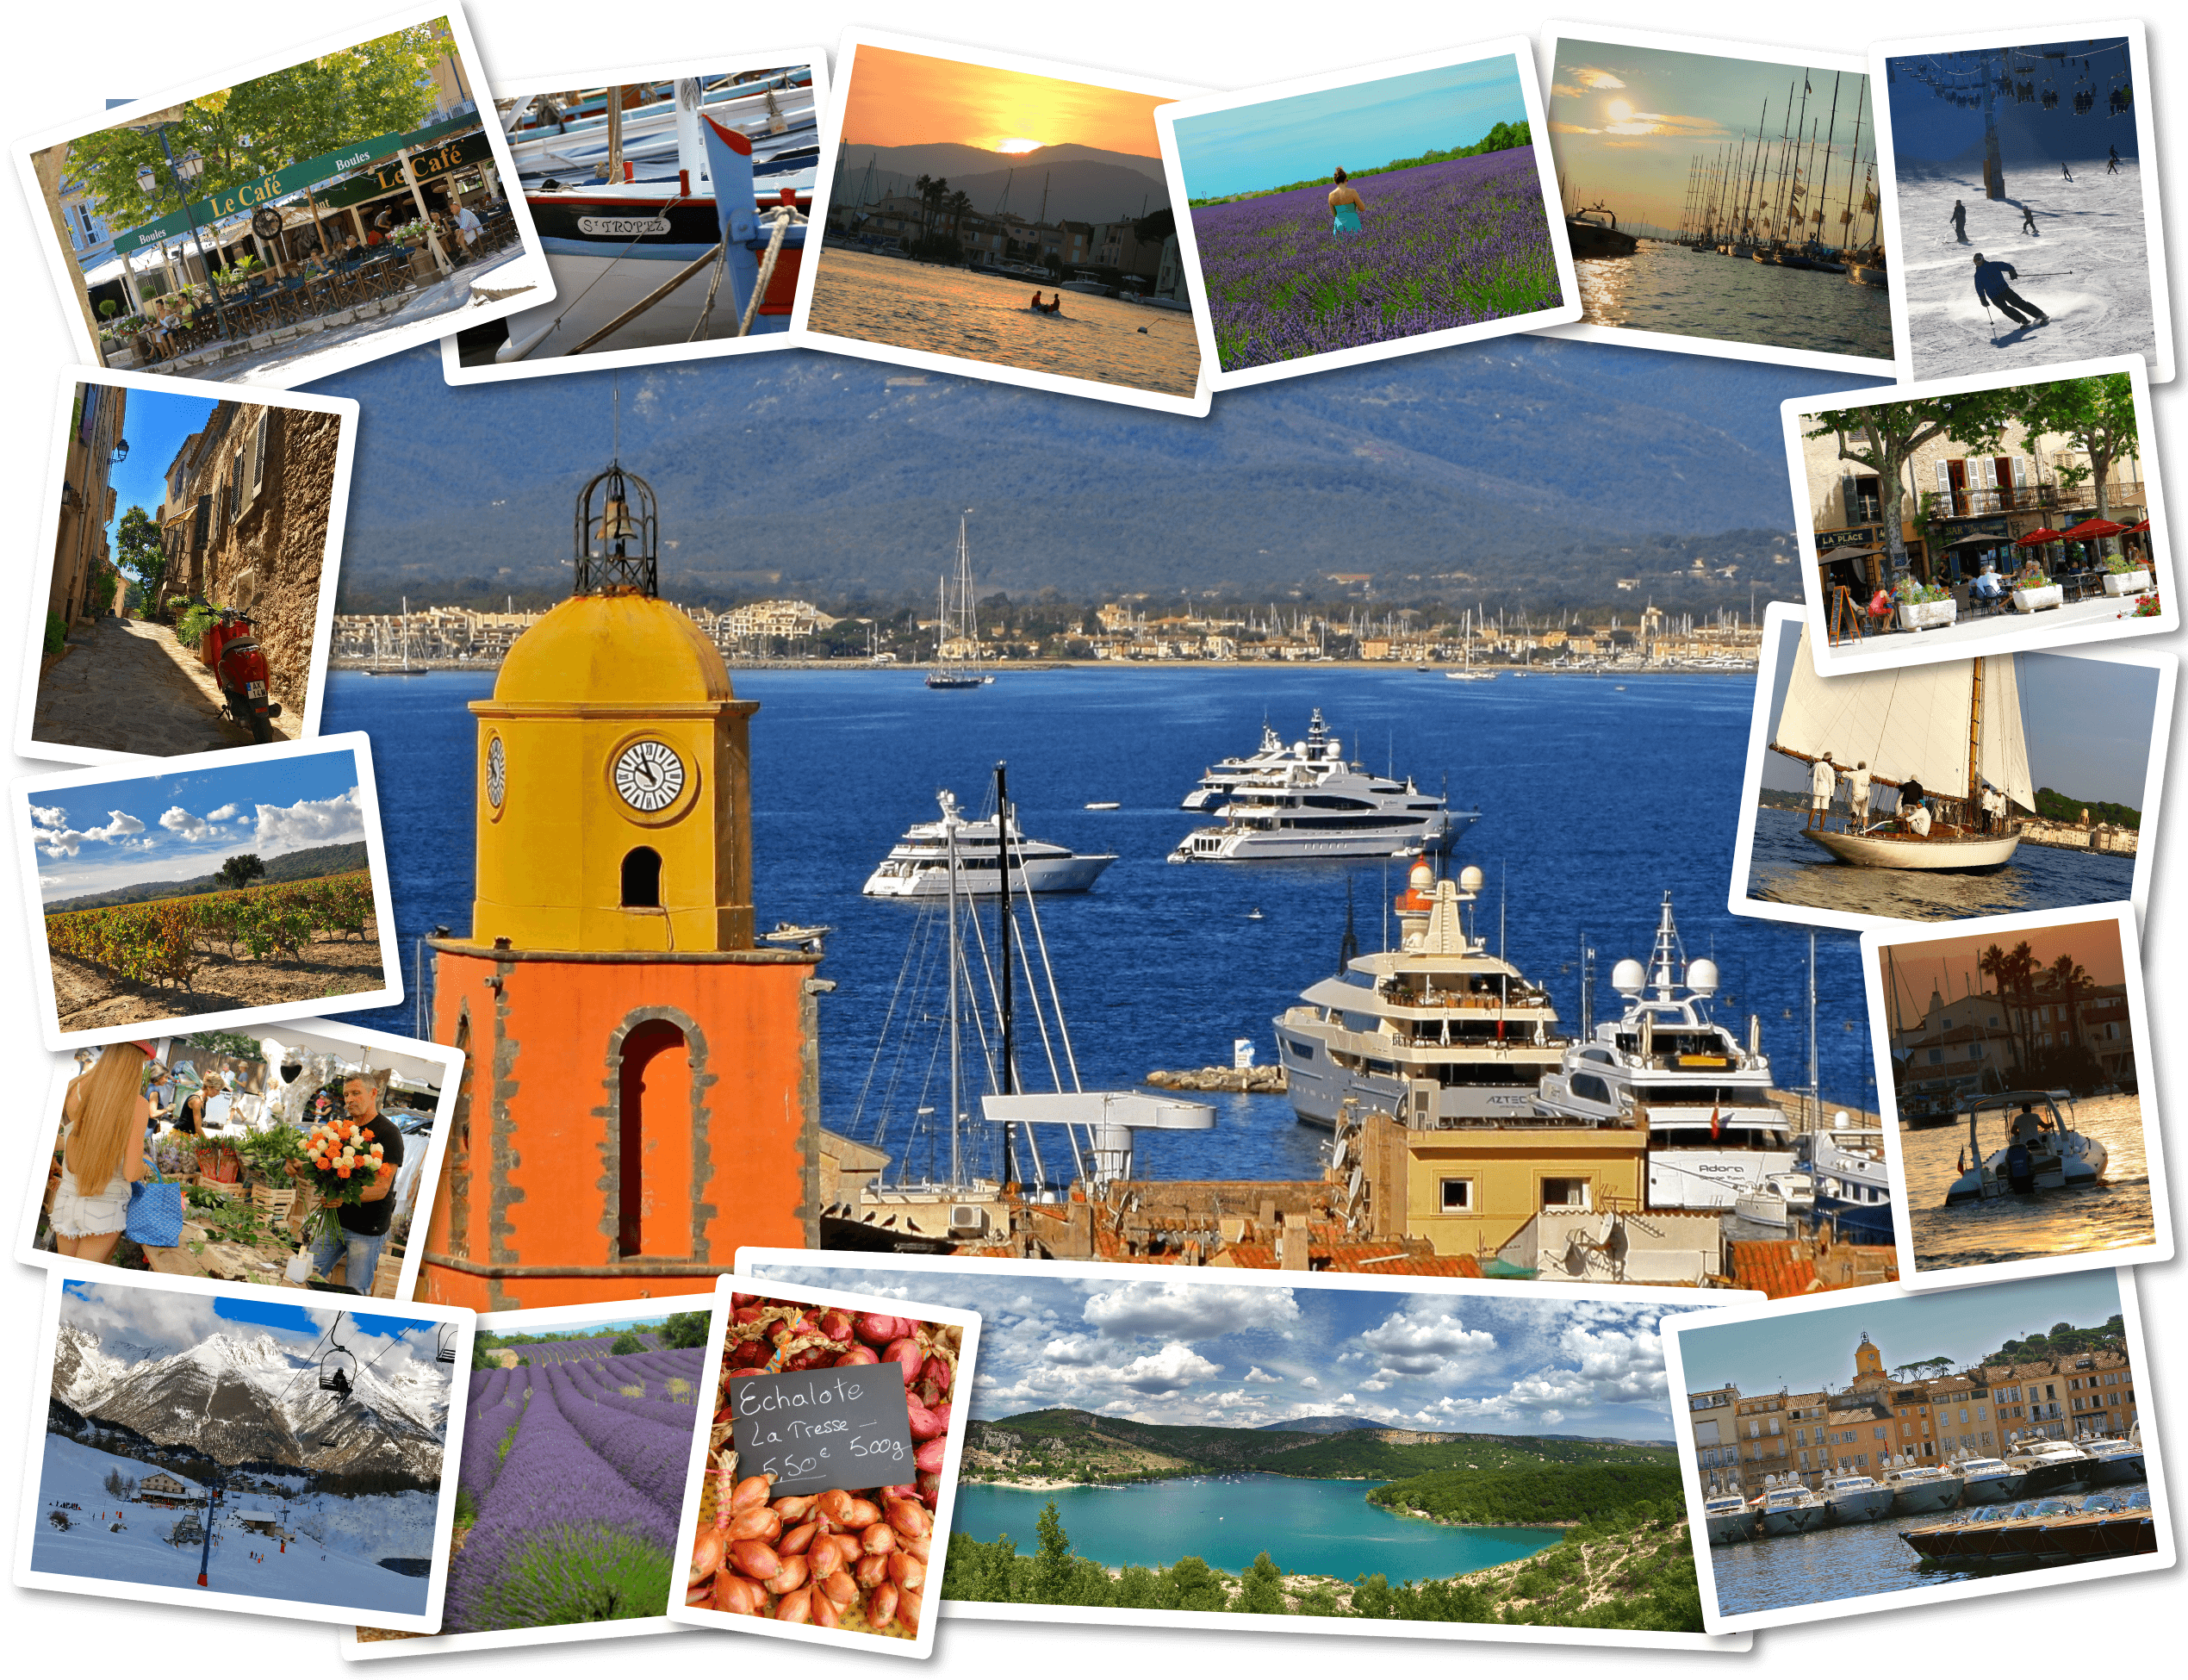 South of France Media Collage Image